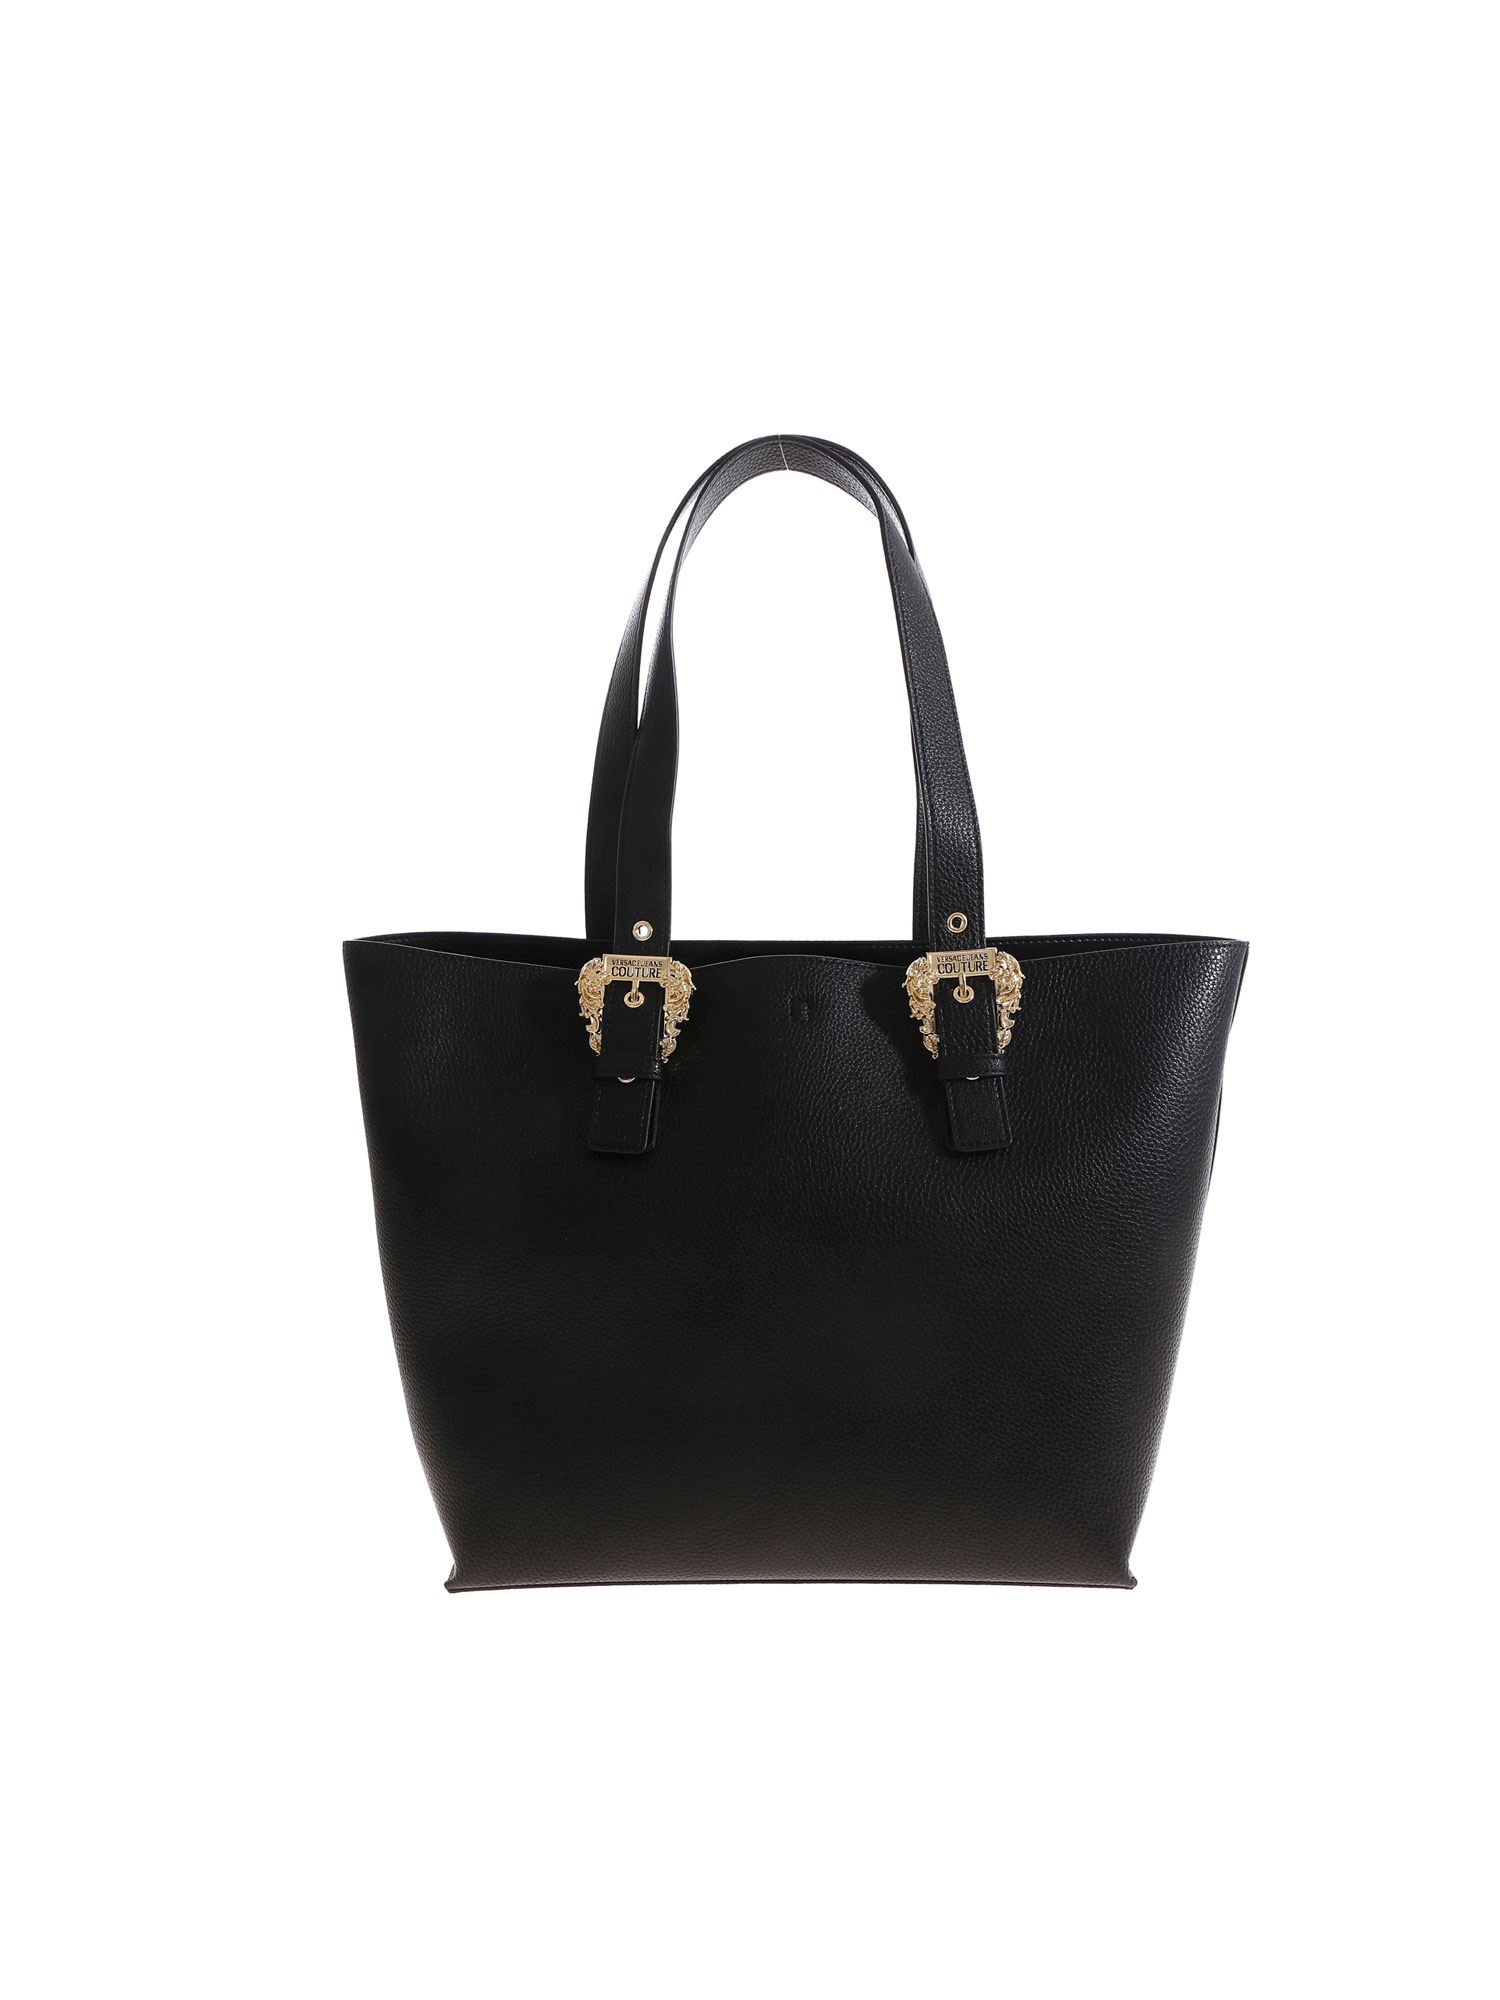 Versace GOLD COLORED BUCKLE SHOPPER IN BLACK